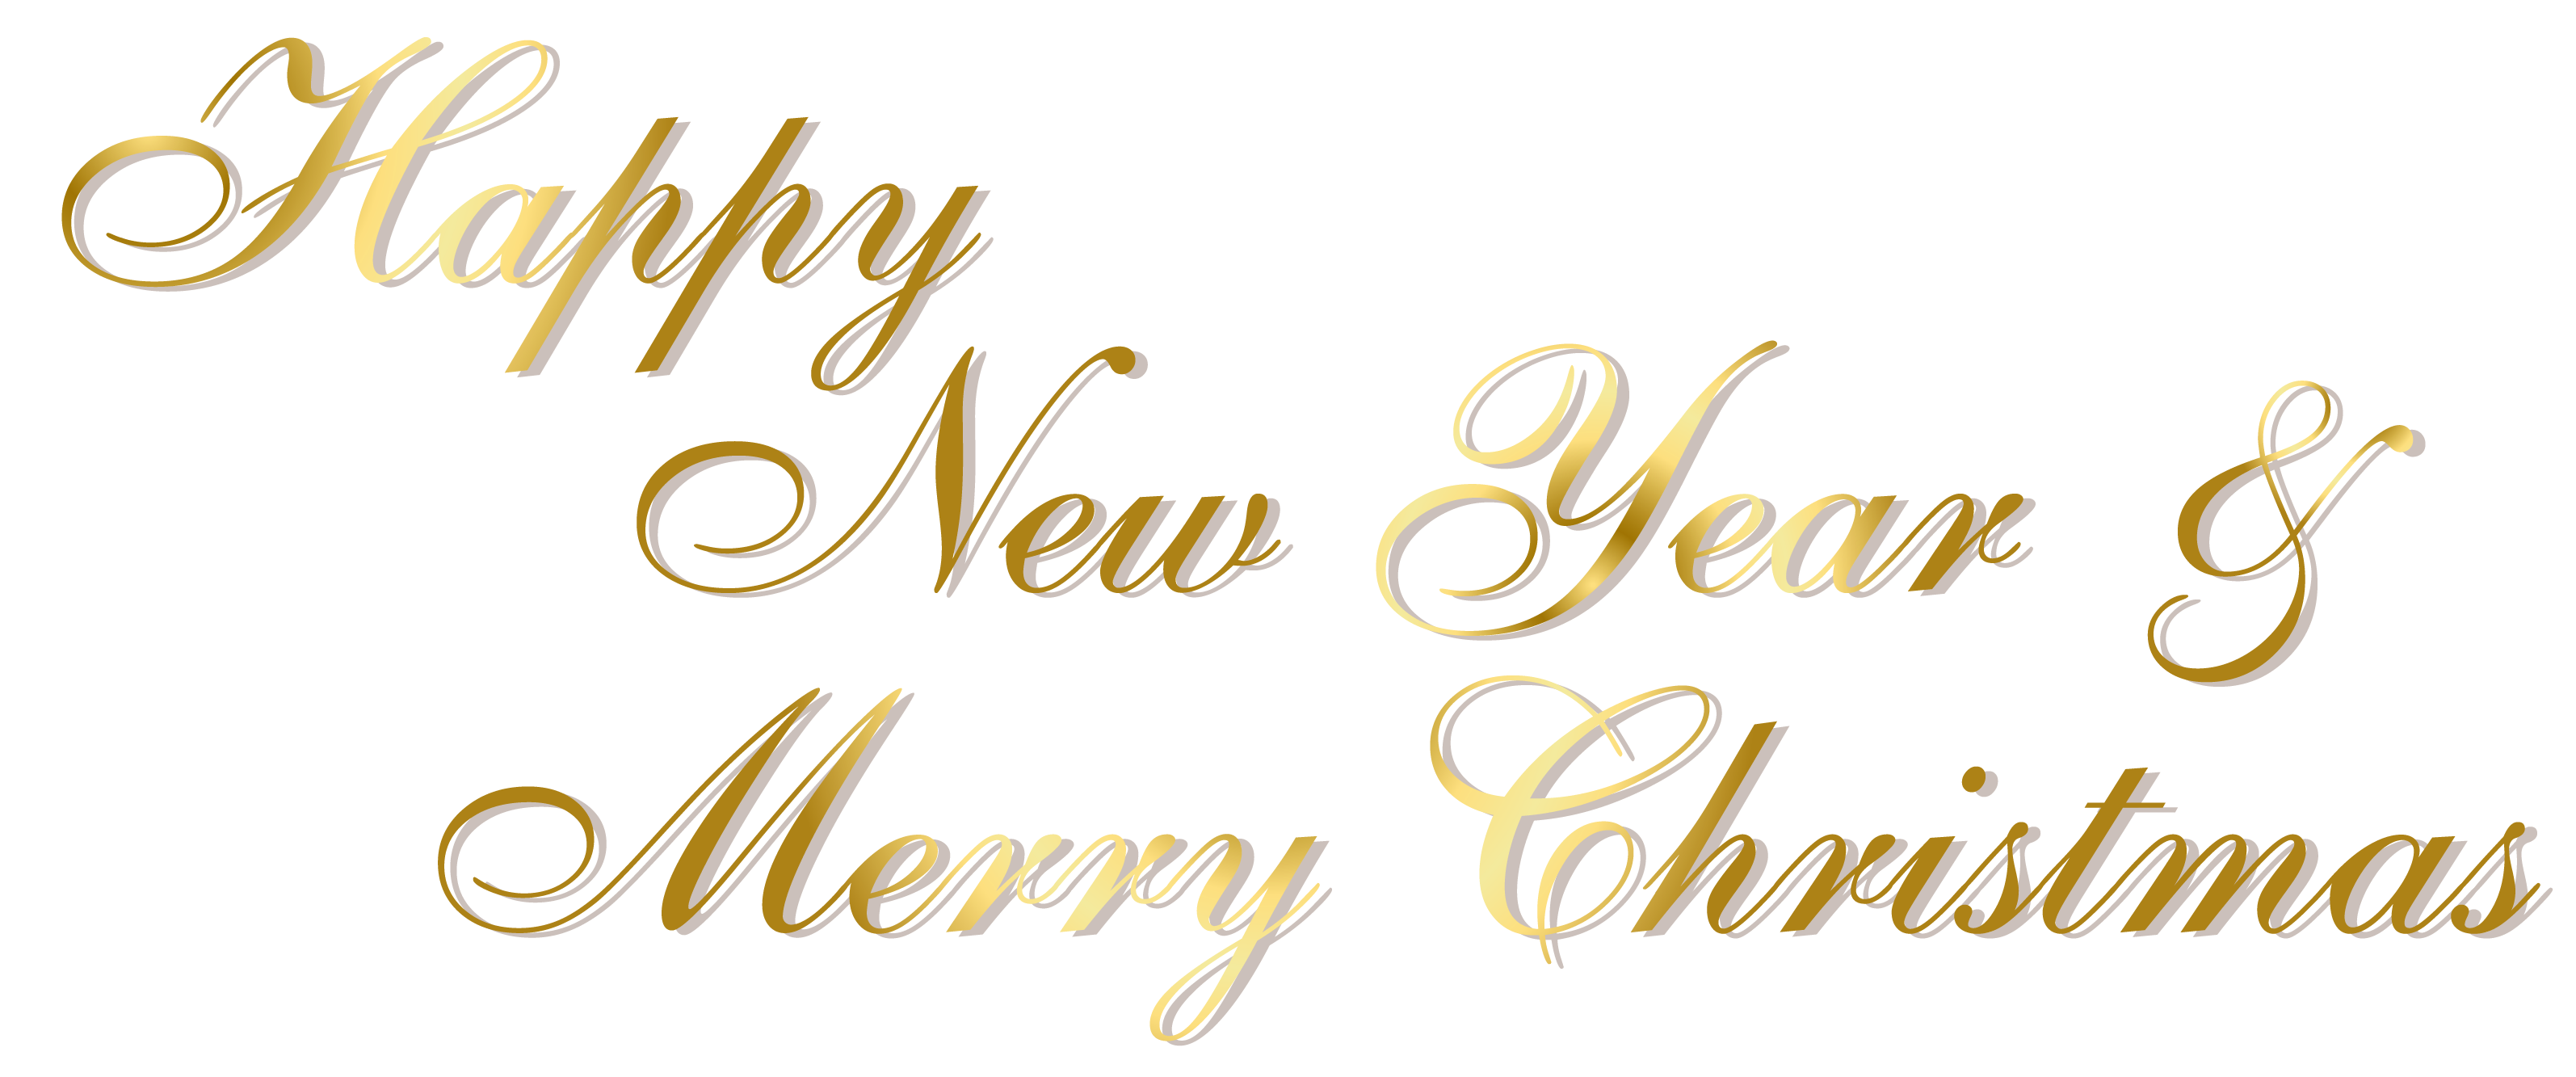 Merry Christmas and Happy New Year 2019 PNG